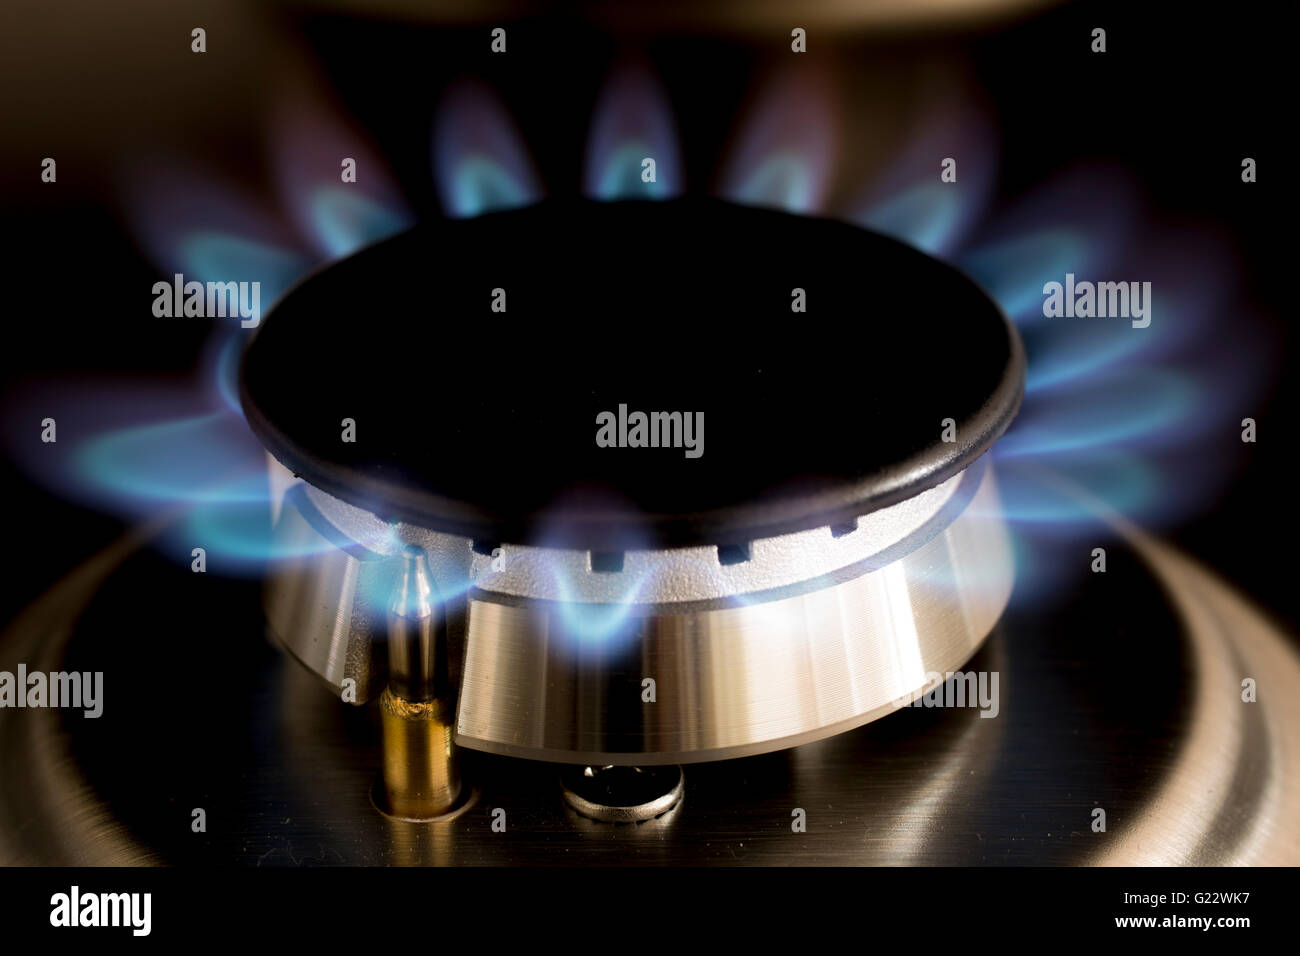 Gas Kochfeld Malerei : Burning gas stockfotos bilder alamy